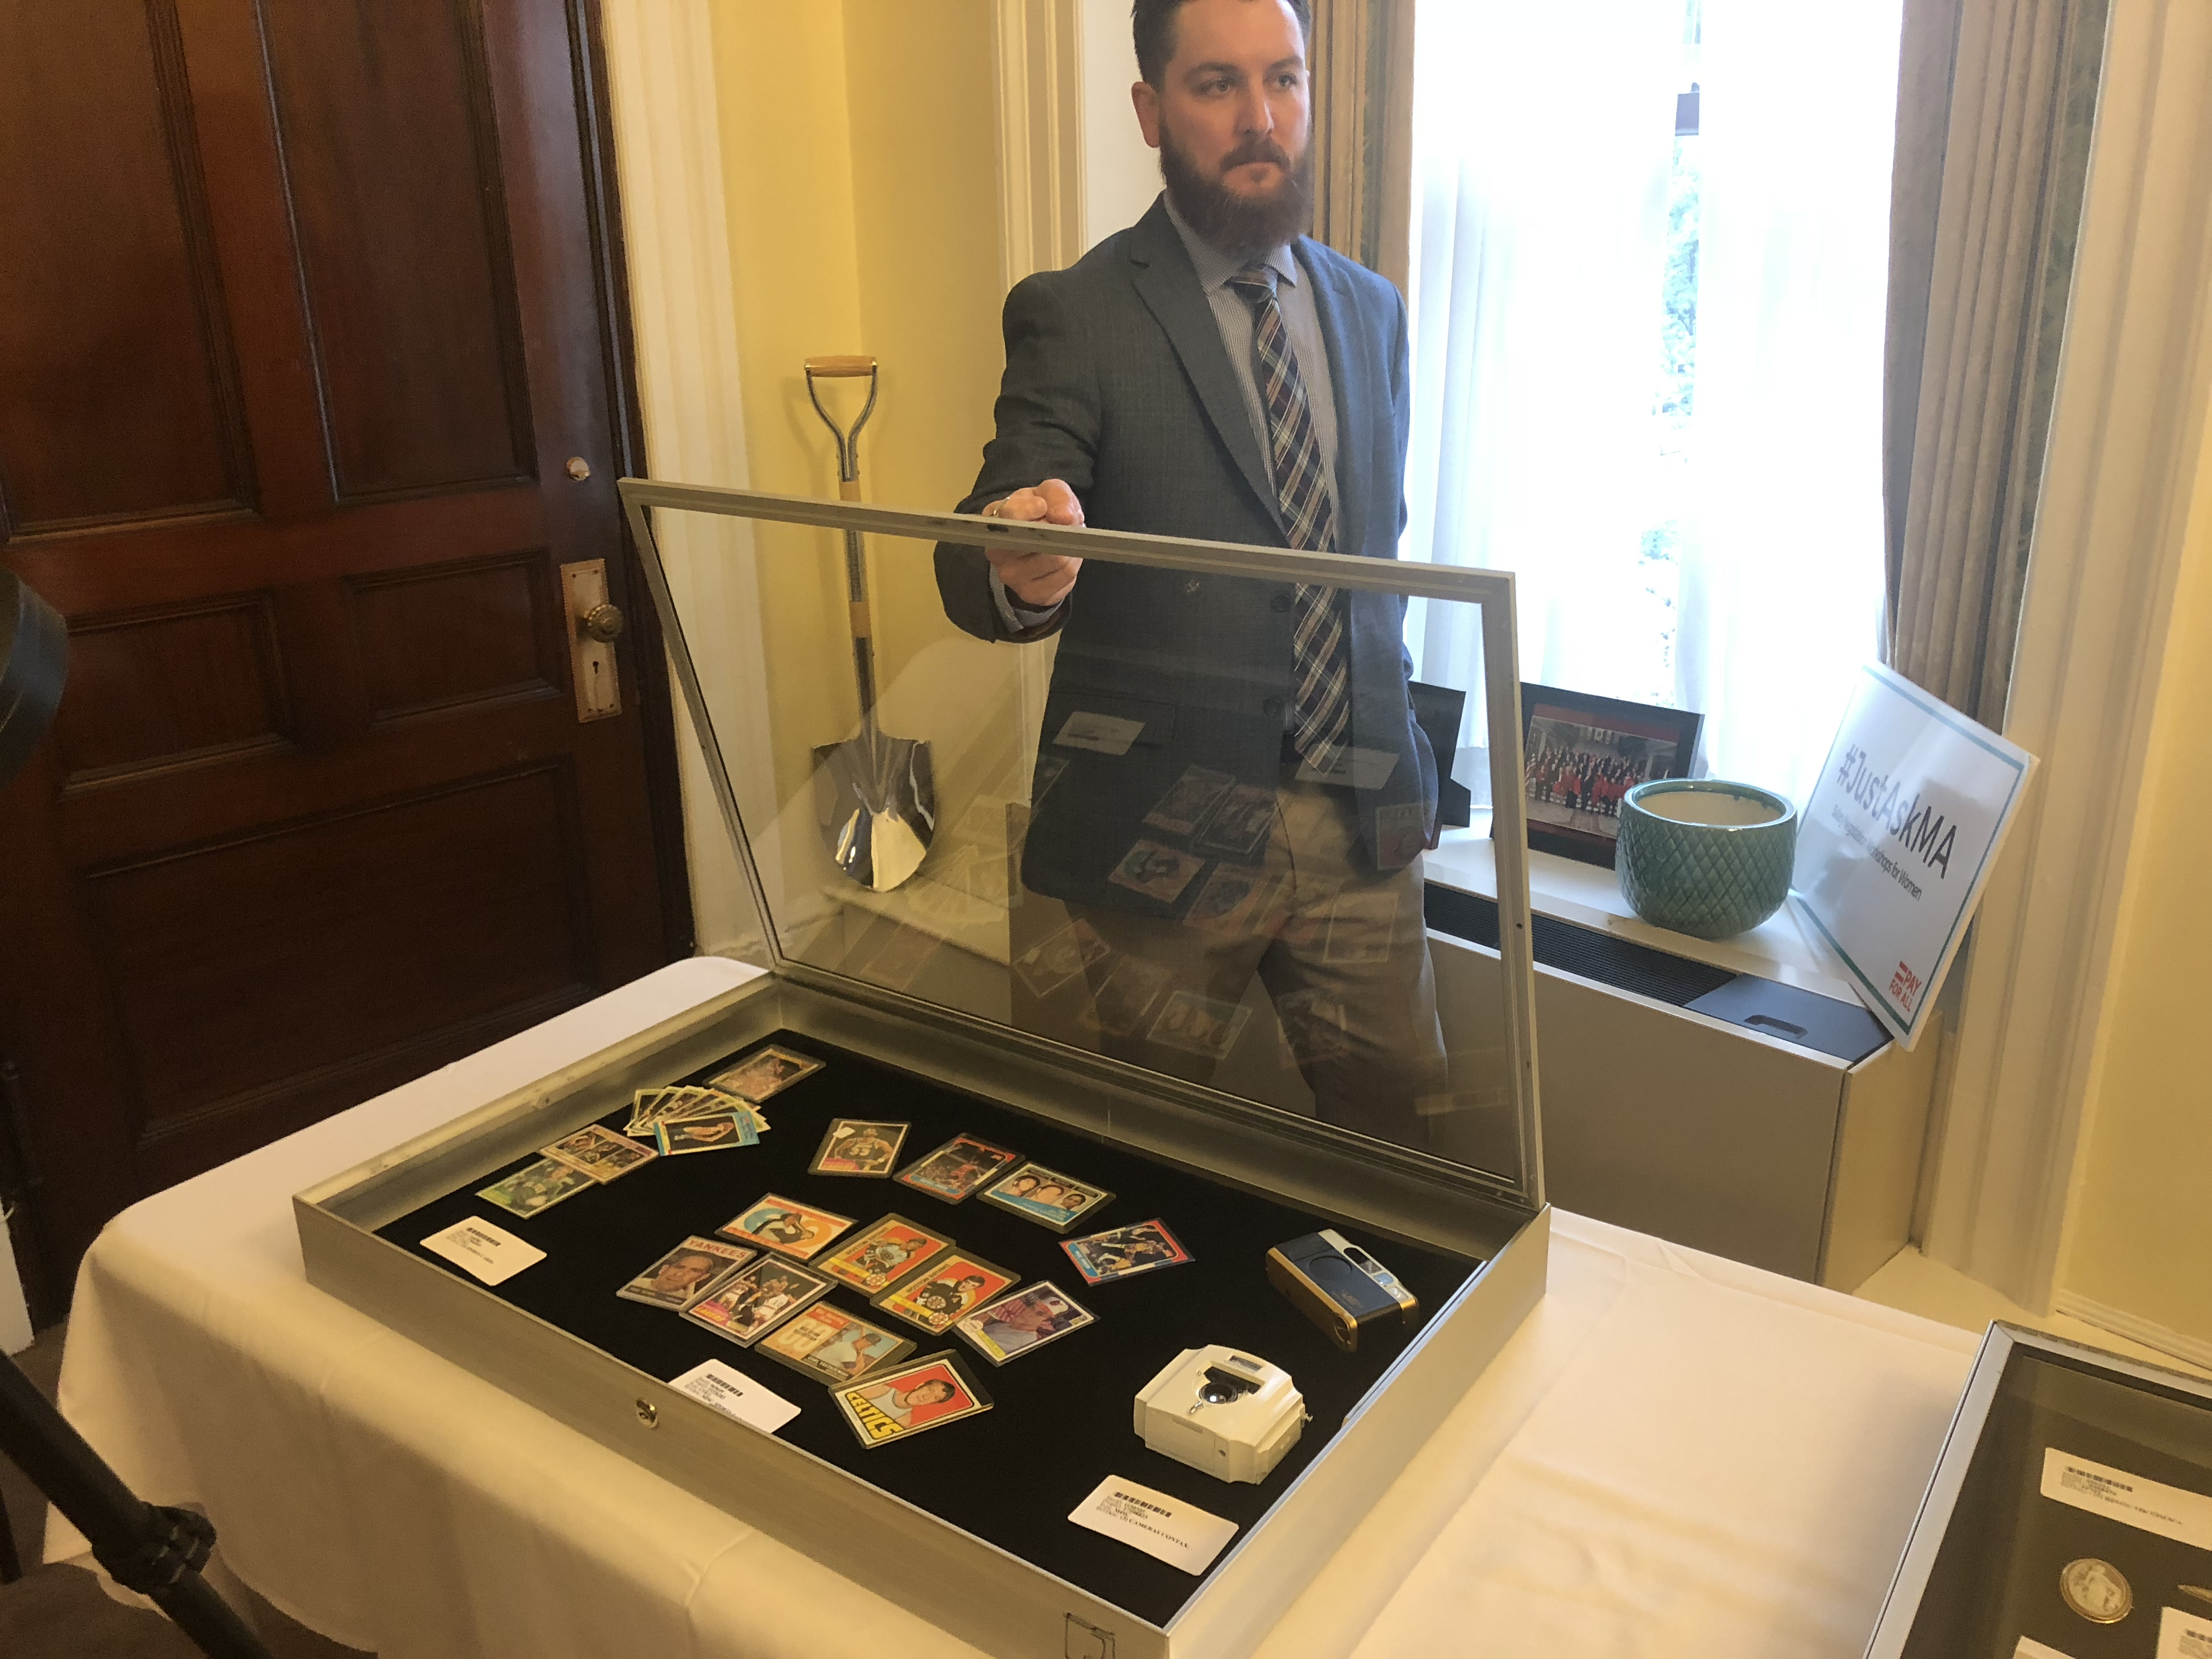 Unclaimed Property to be Auctioned by State